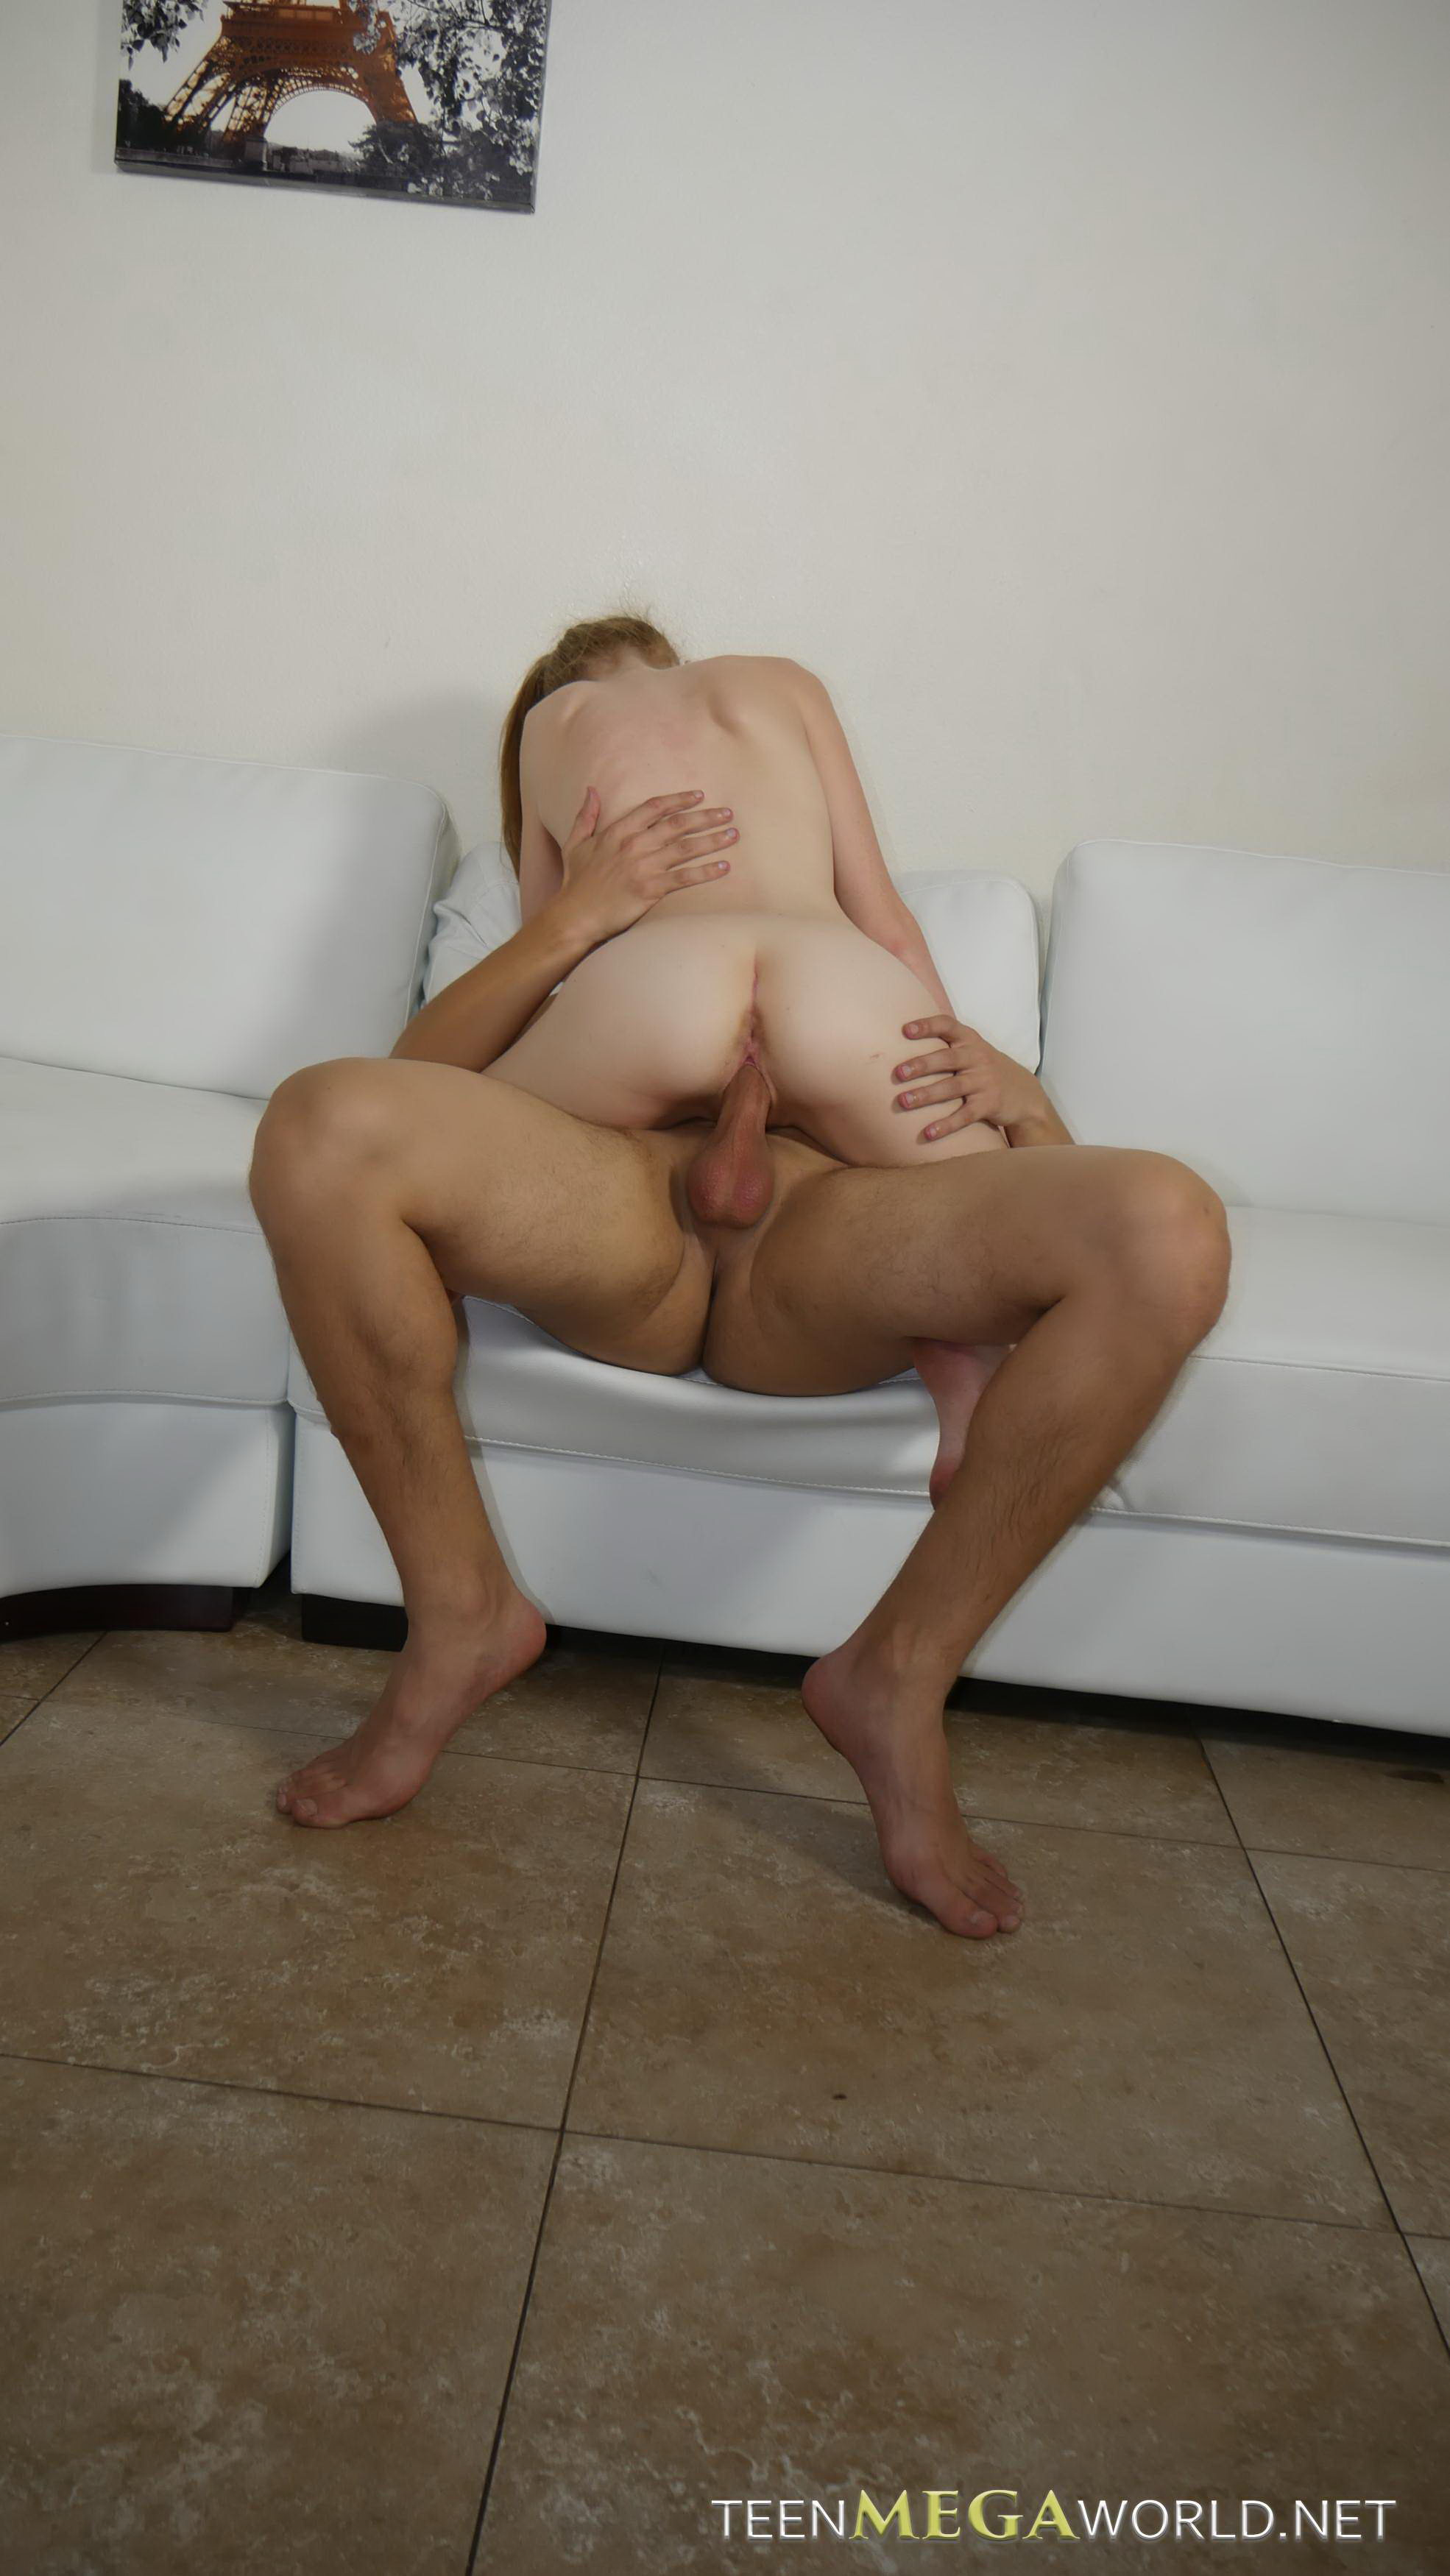 Precisely does young redhead fucked hard on sofa confirm. All